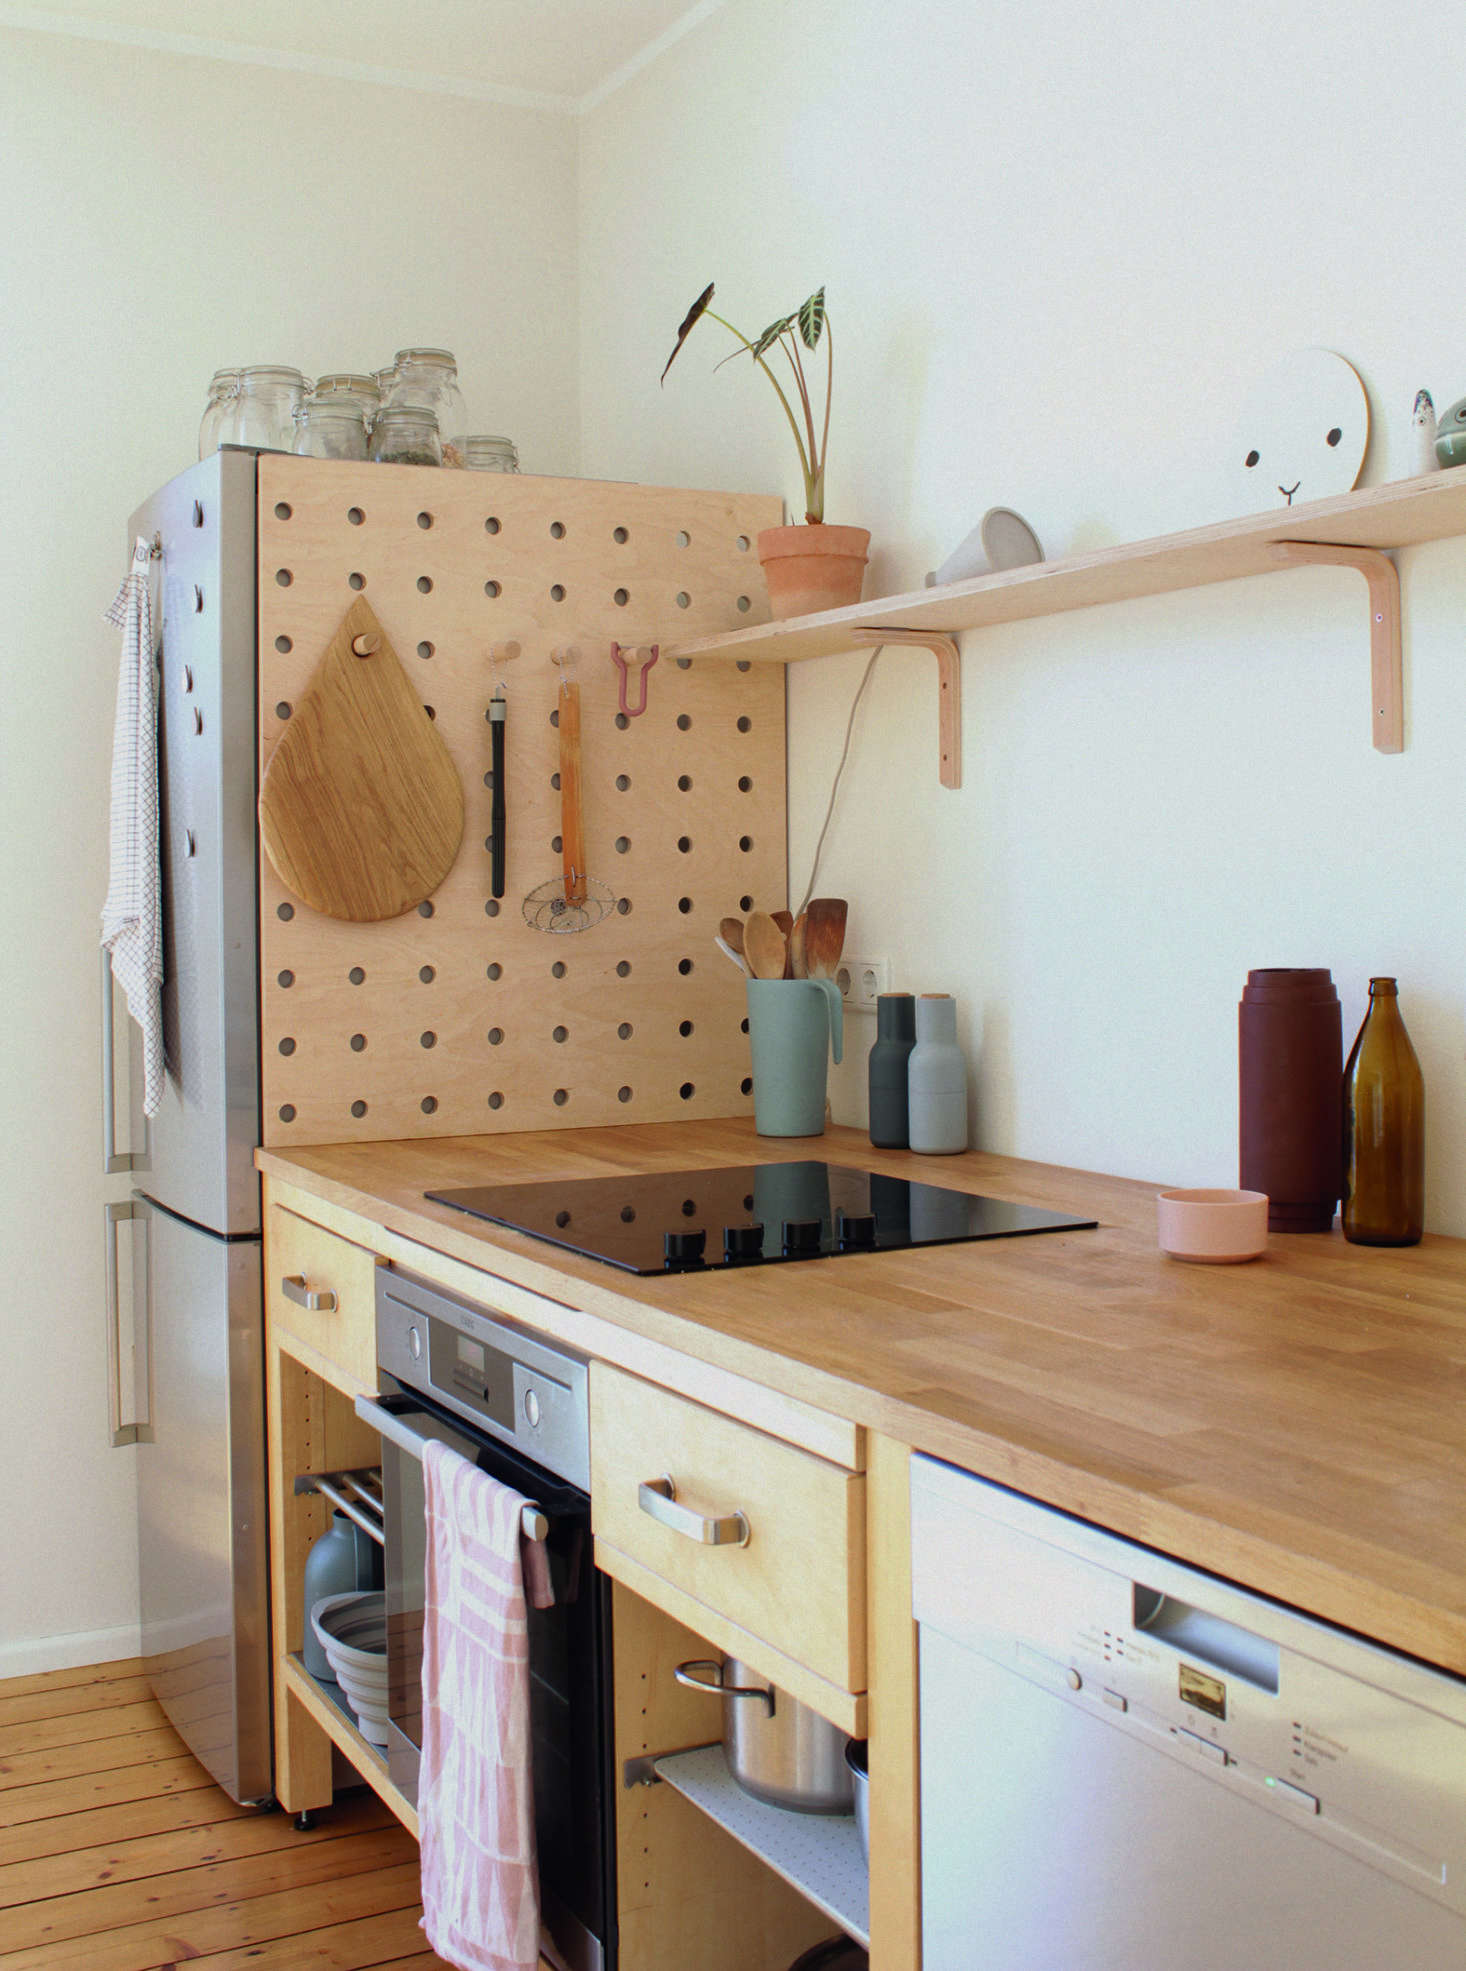 A DIY Wooden Pegboard In The Kitchen Of Illustrator/graphic Designer  Swantje Hindrichsen Created From